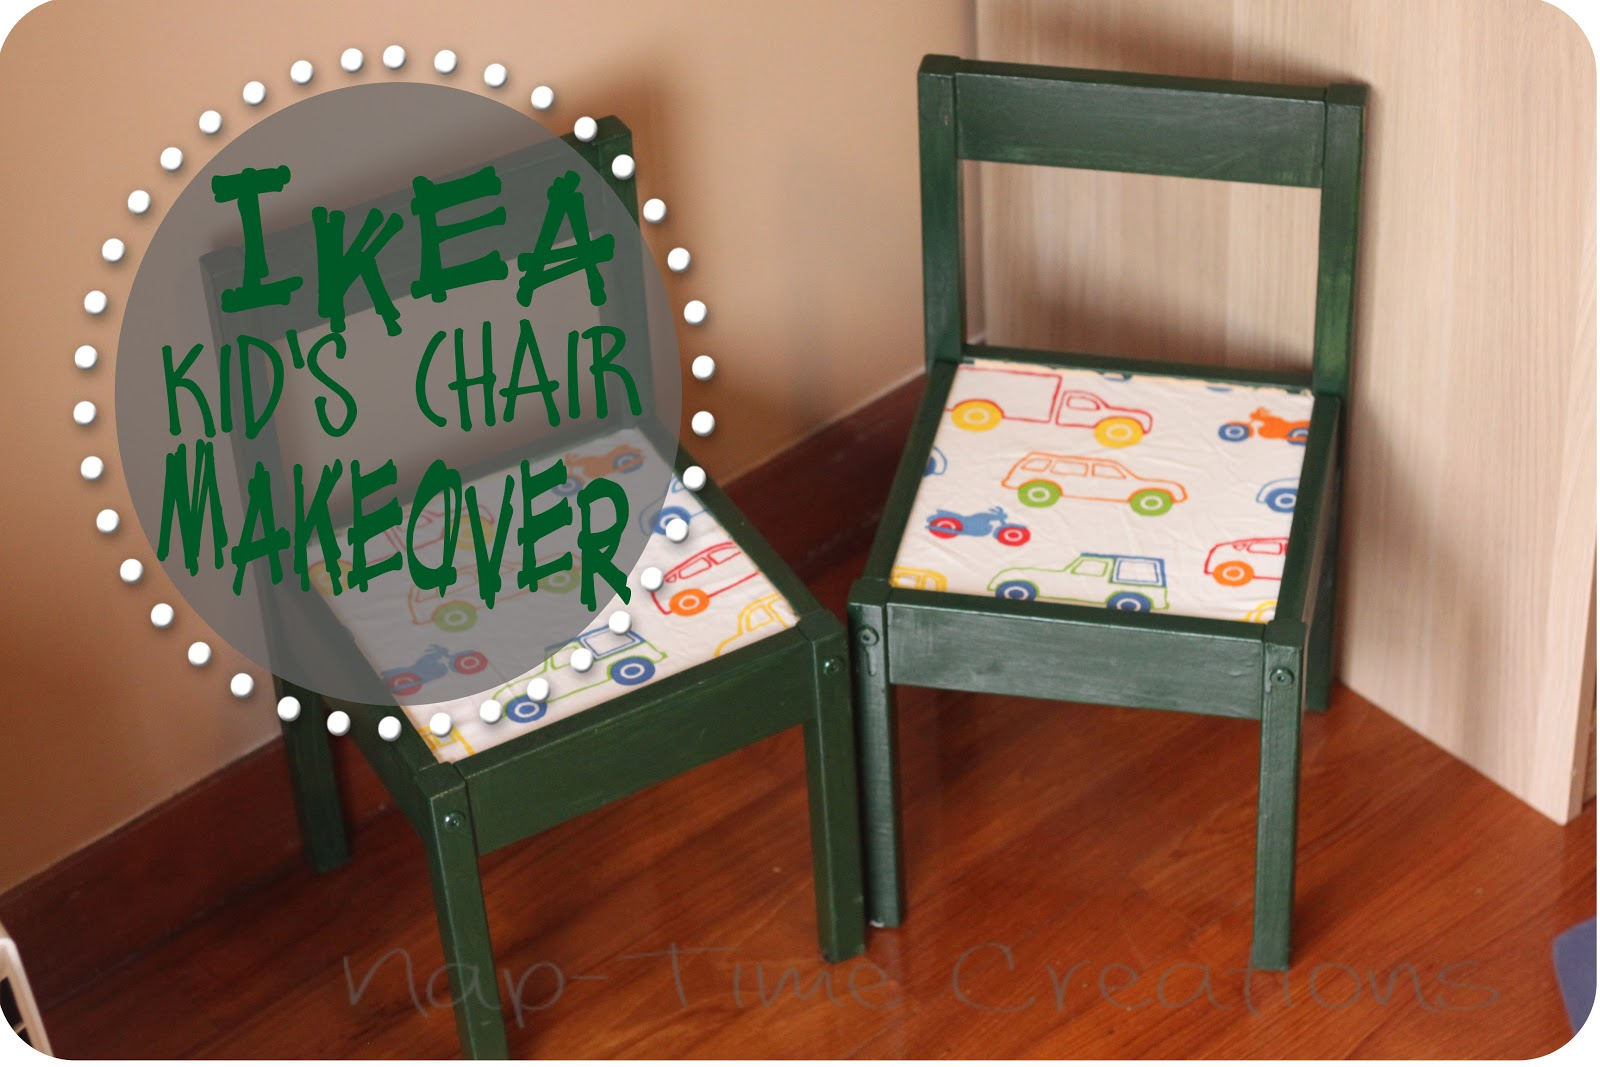 Pleasant Ikea Kids Chair Makeover A Little Diy Project Life Andrewgaddart Wooden Chair Designs For Living Room Andrewgaddartcom